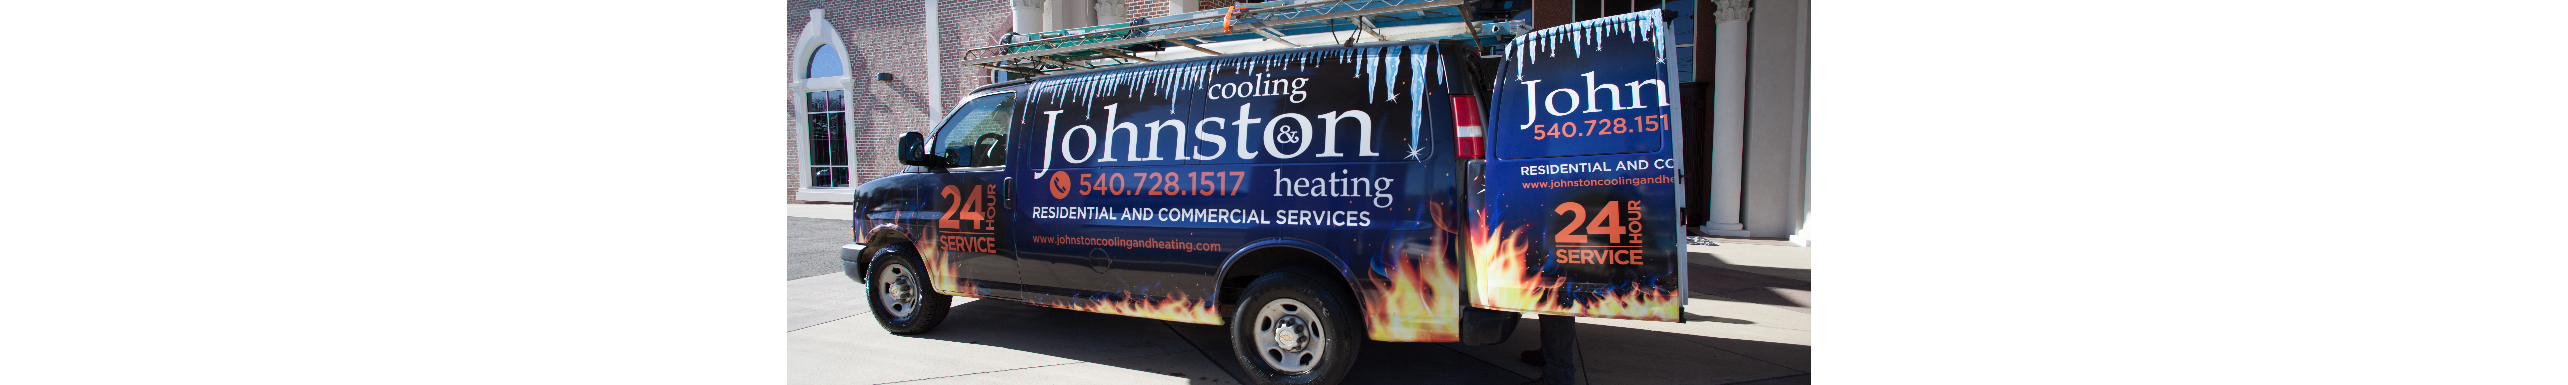 Johnston Heating And Cooling Bedford Va 24523 Networx